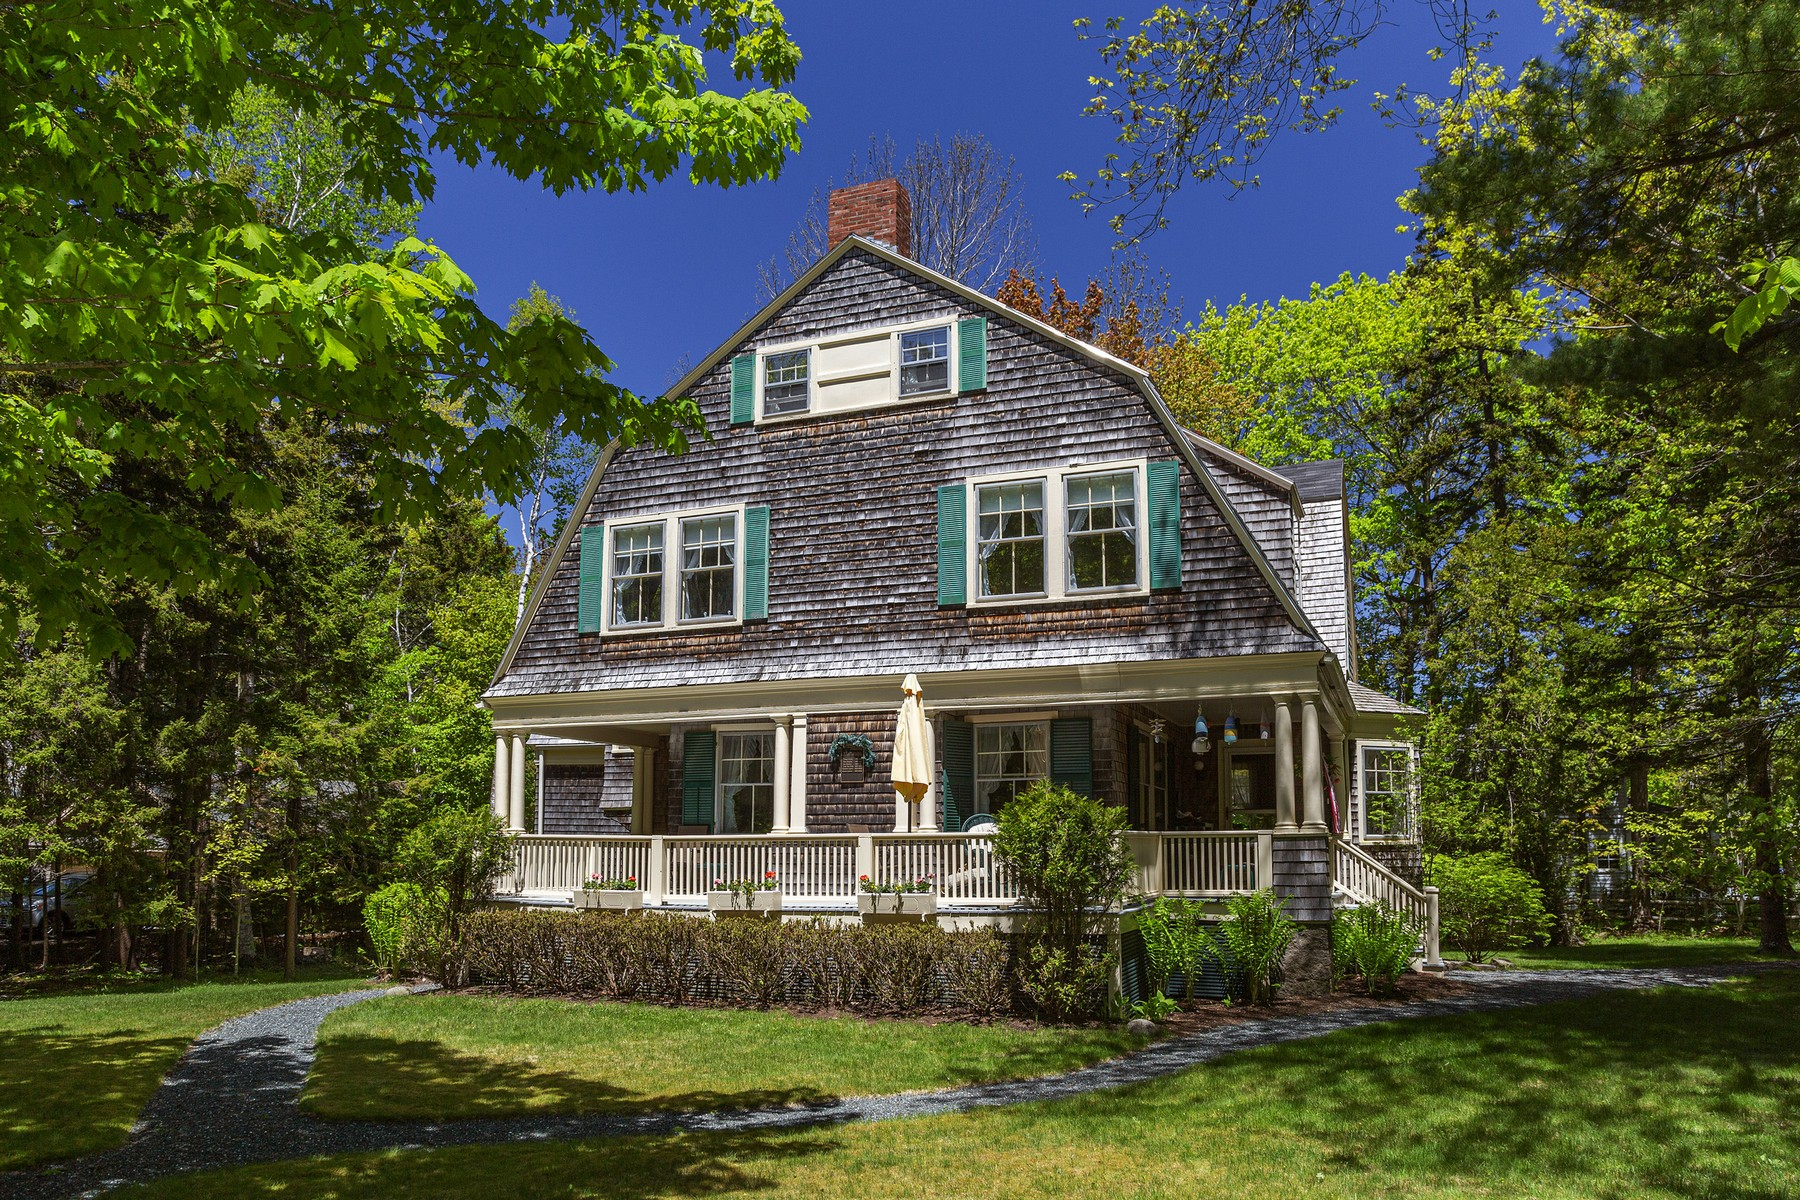 Single Family Homes for Sale at Healing Porch 13 Rock End Road, Northeast Harbor, Maine 04662 United States